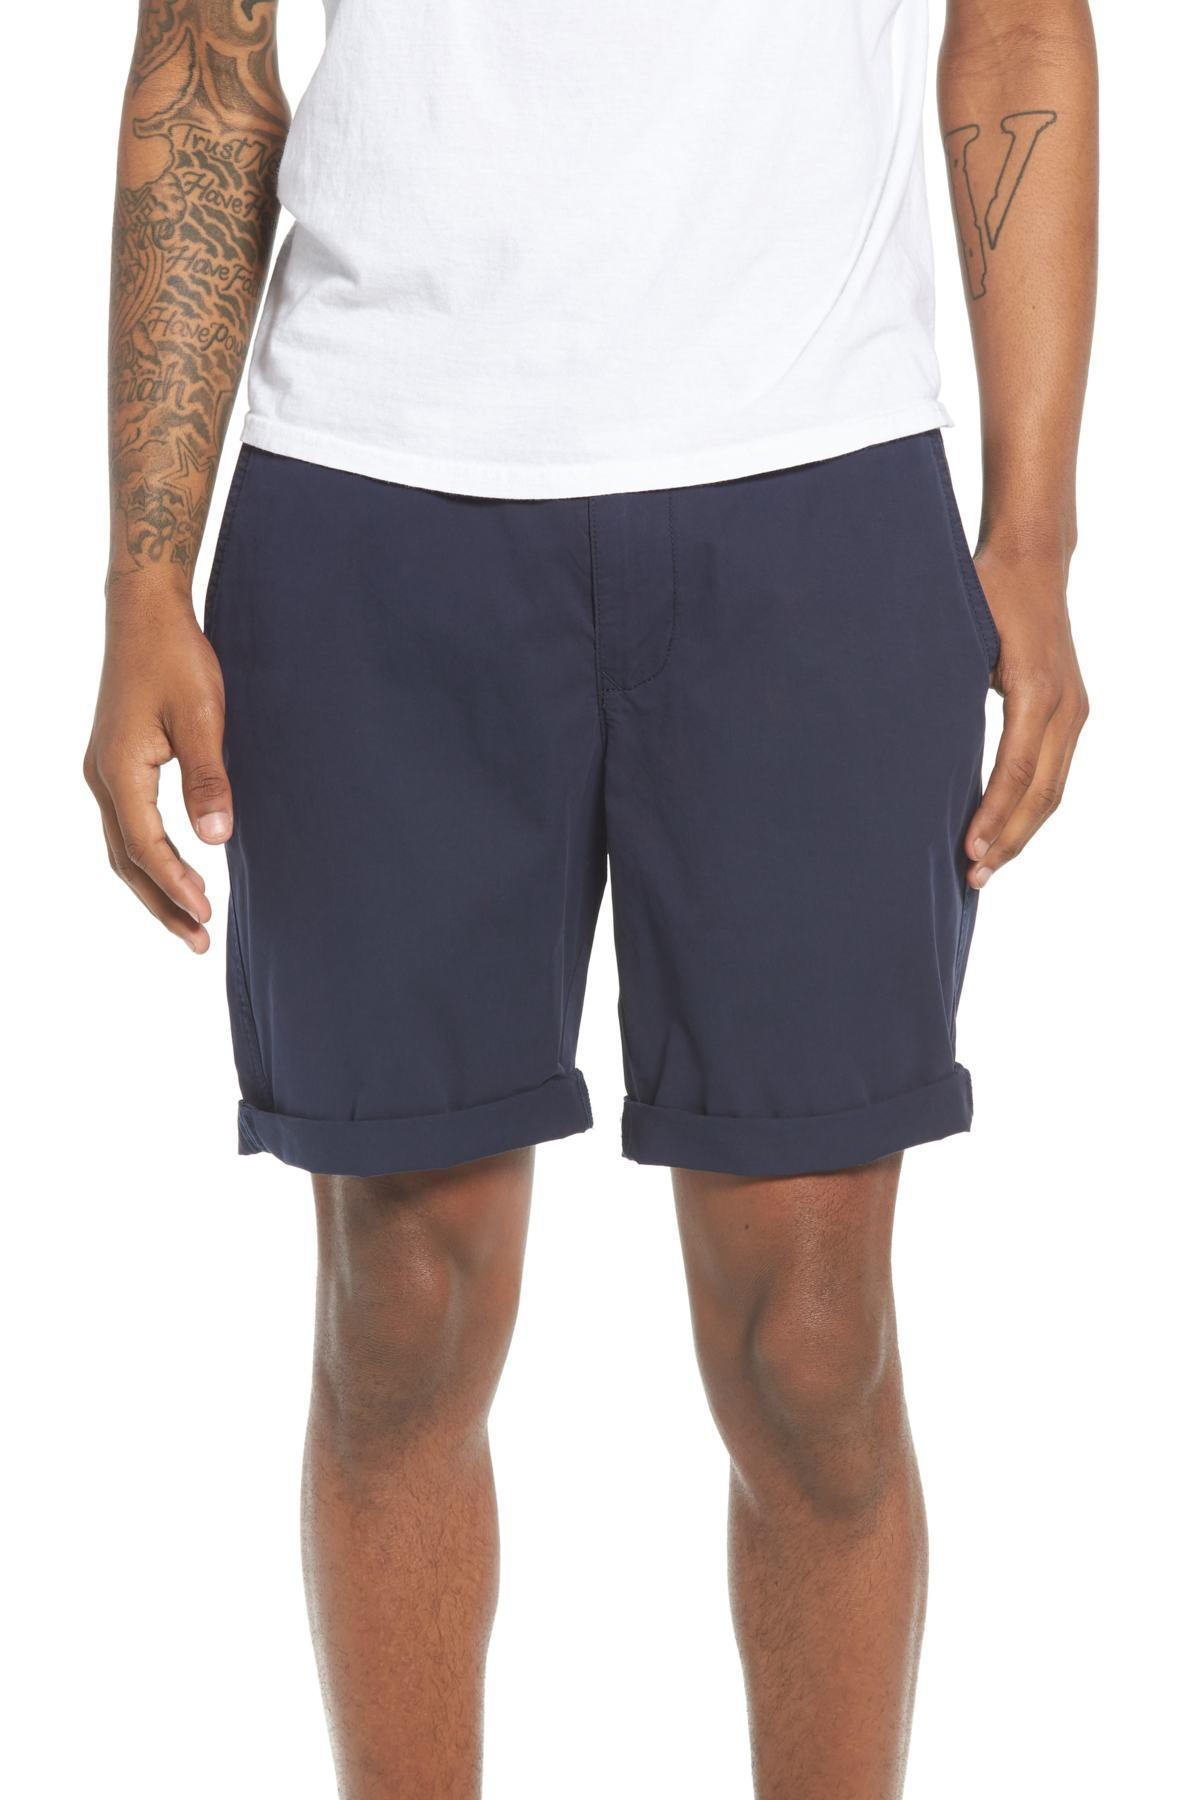 59025555382c1 Lyst - The Rail Washed Cuffed Shorts in Blue for Men